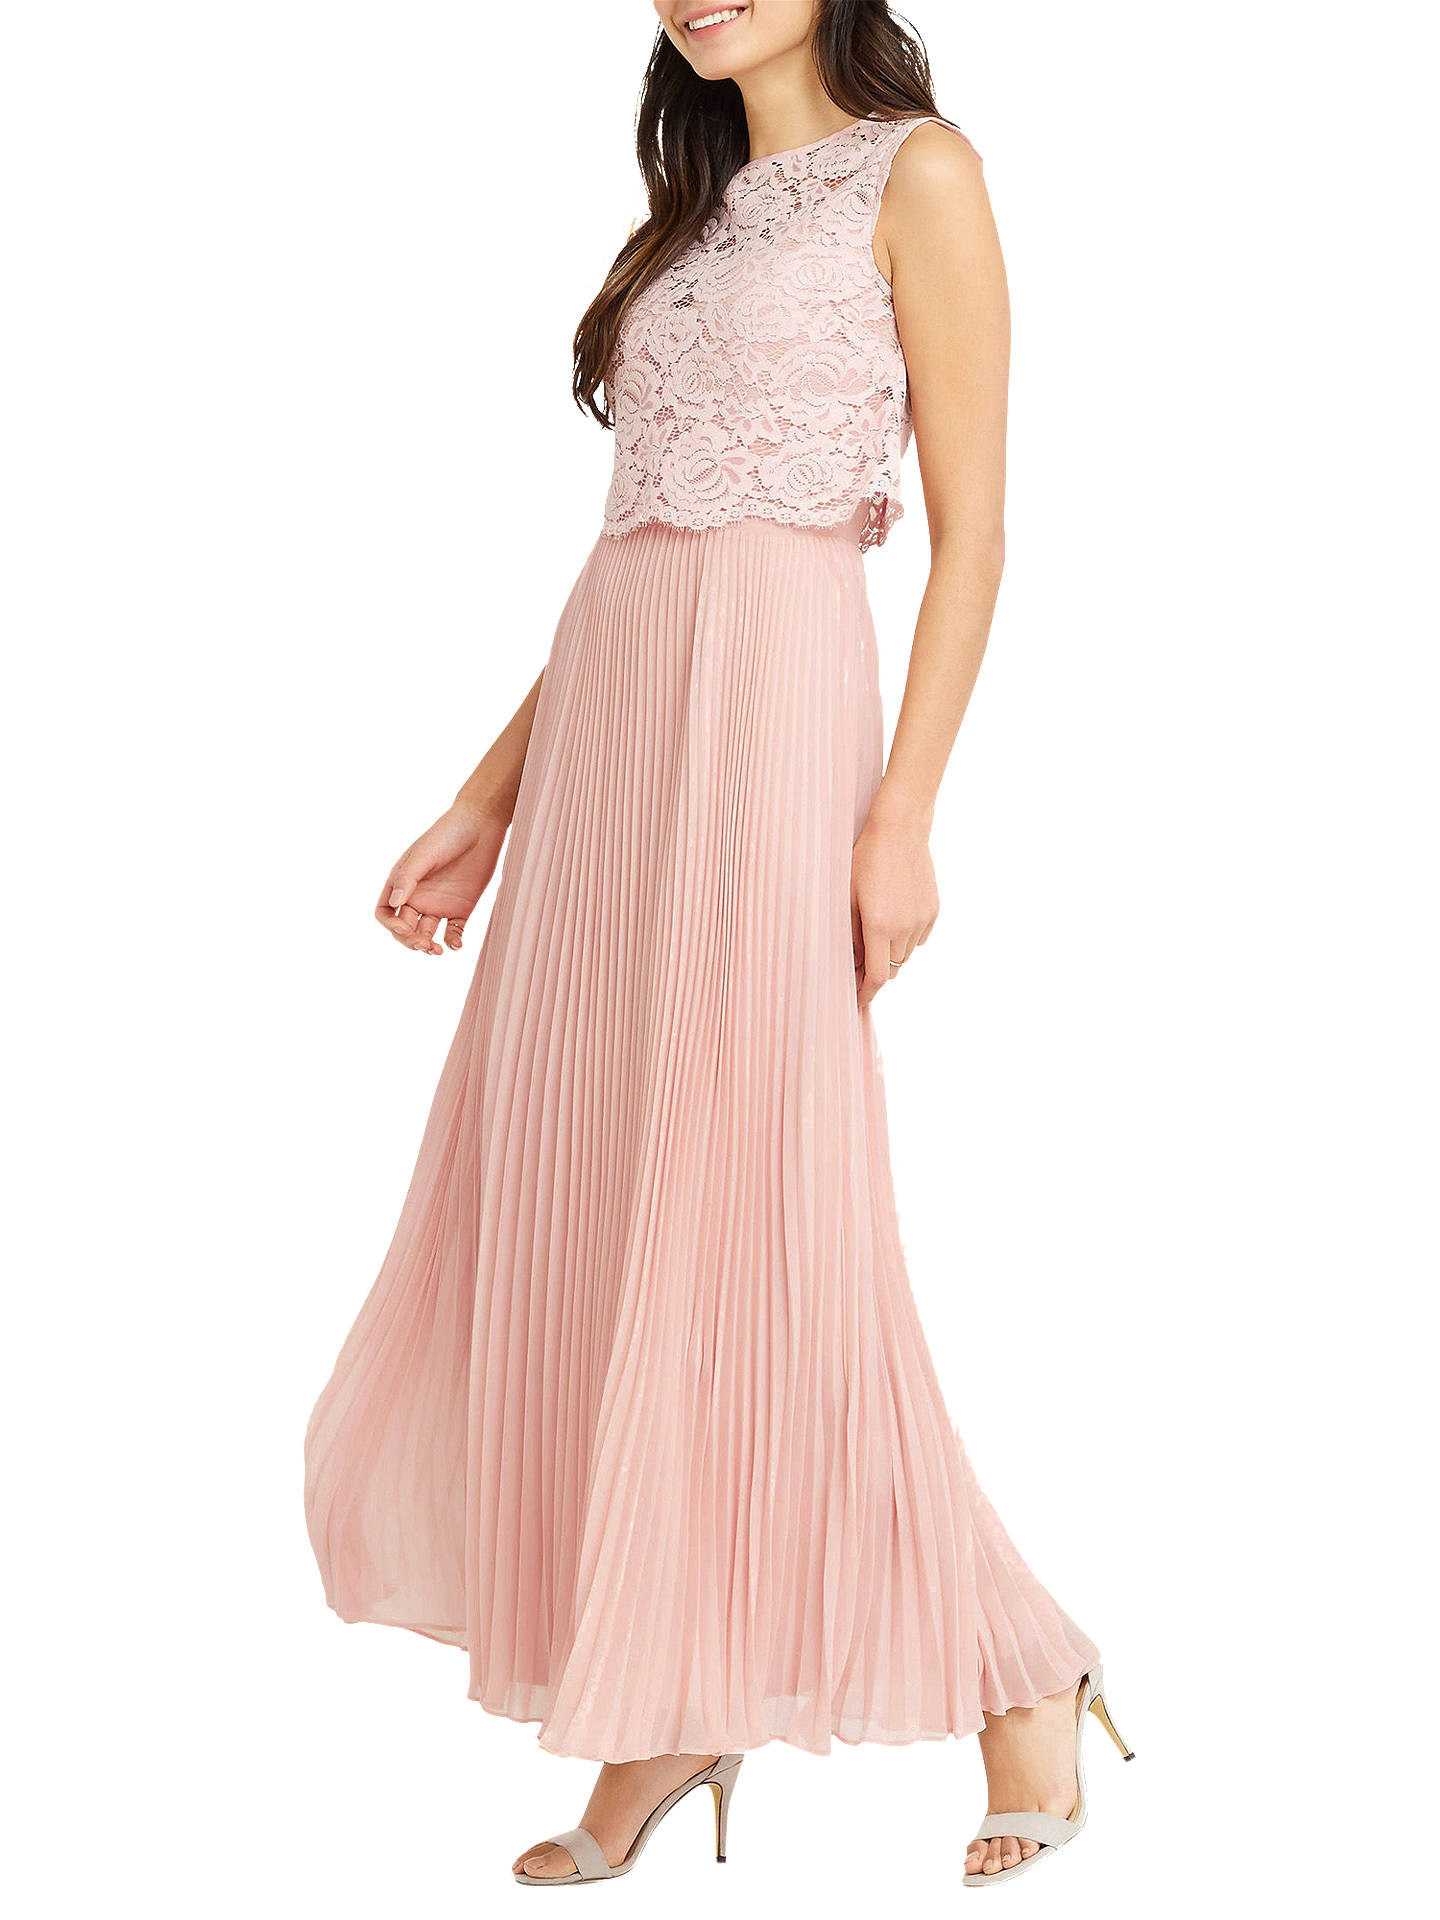 4d5daf29067 Buy Oasis 2 in 1 Lace Bodice Maxi Dress